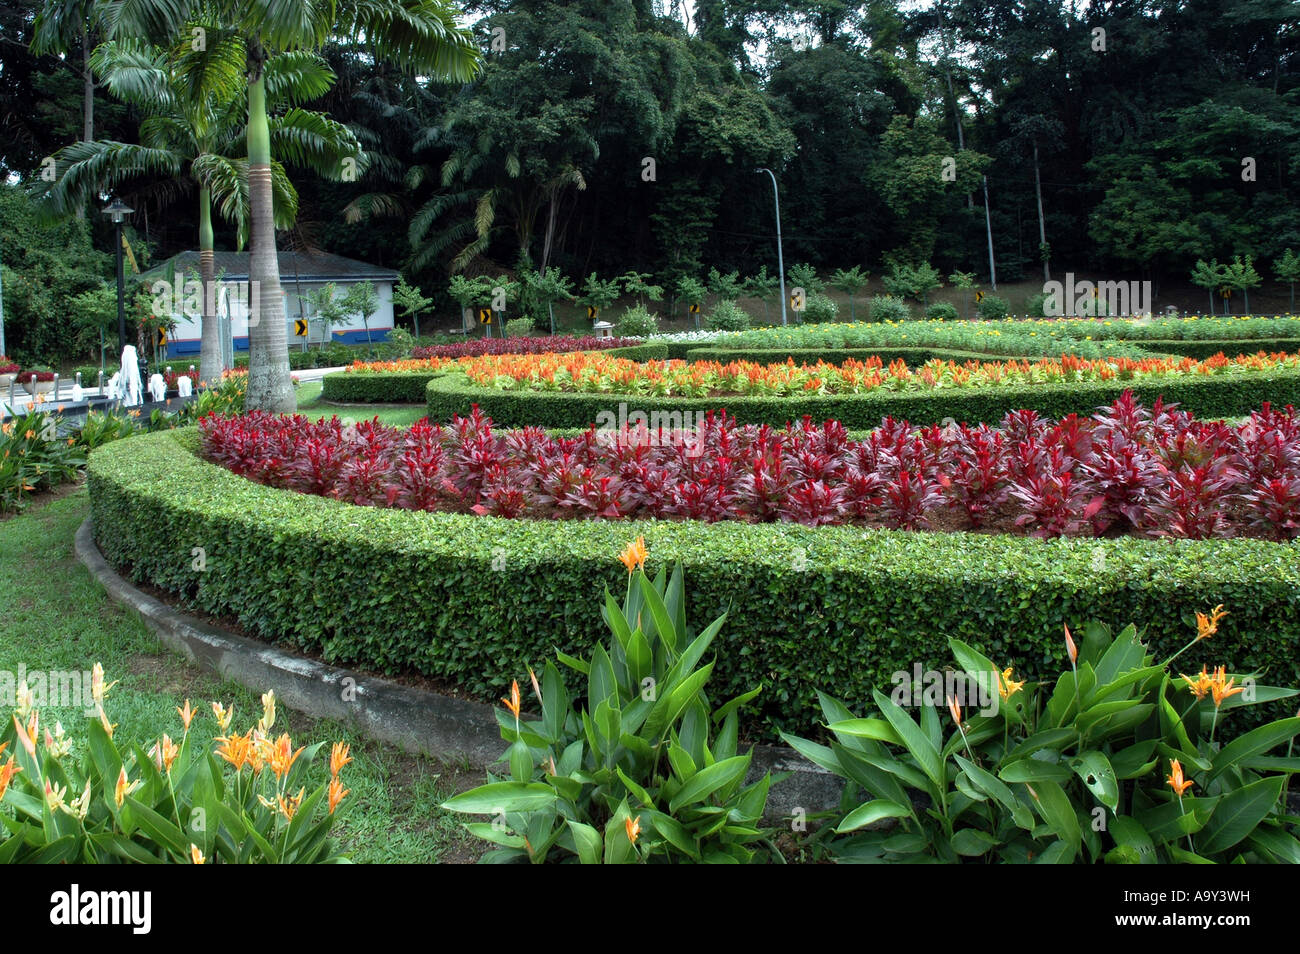 Flower Garden in Malaysia Stock Photo, Royalty Free Image